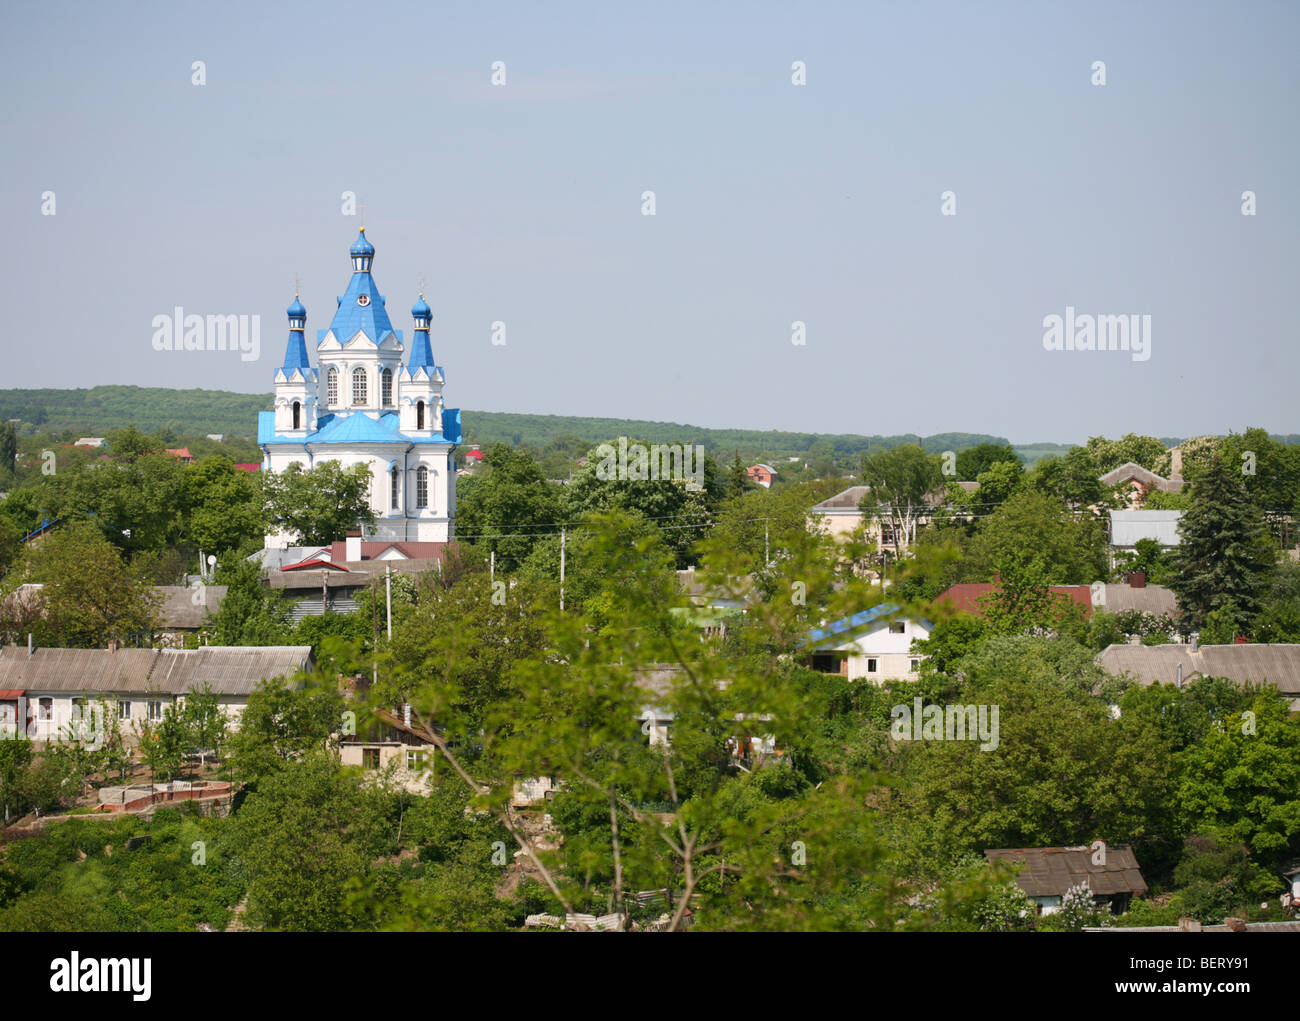 Church in Ukraine - Stock Image